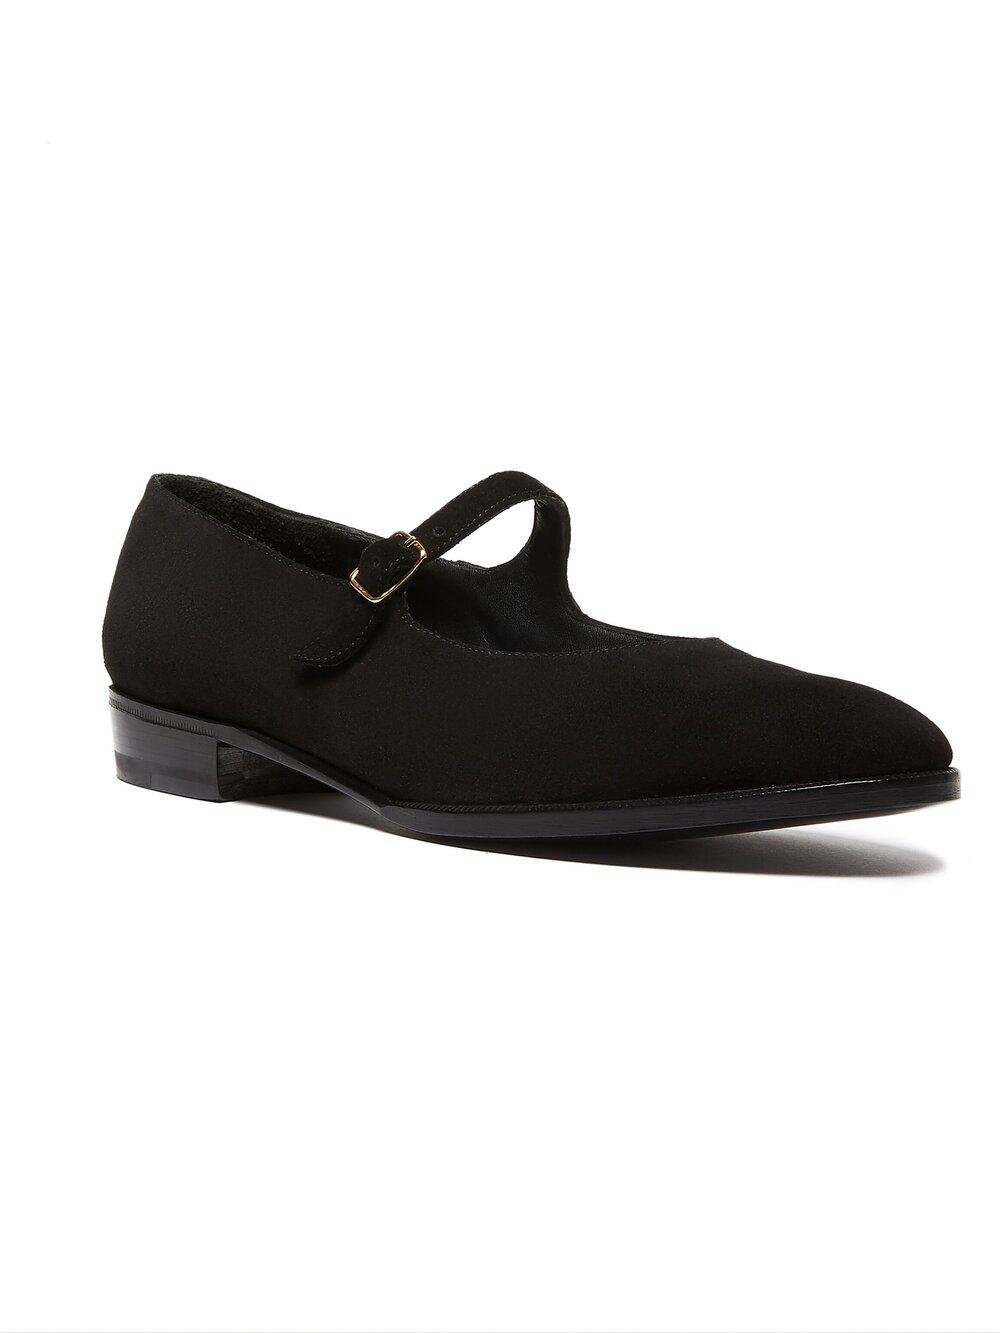 ODPEssentials Classic Mary Jane - Black Suede